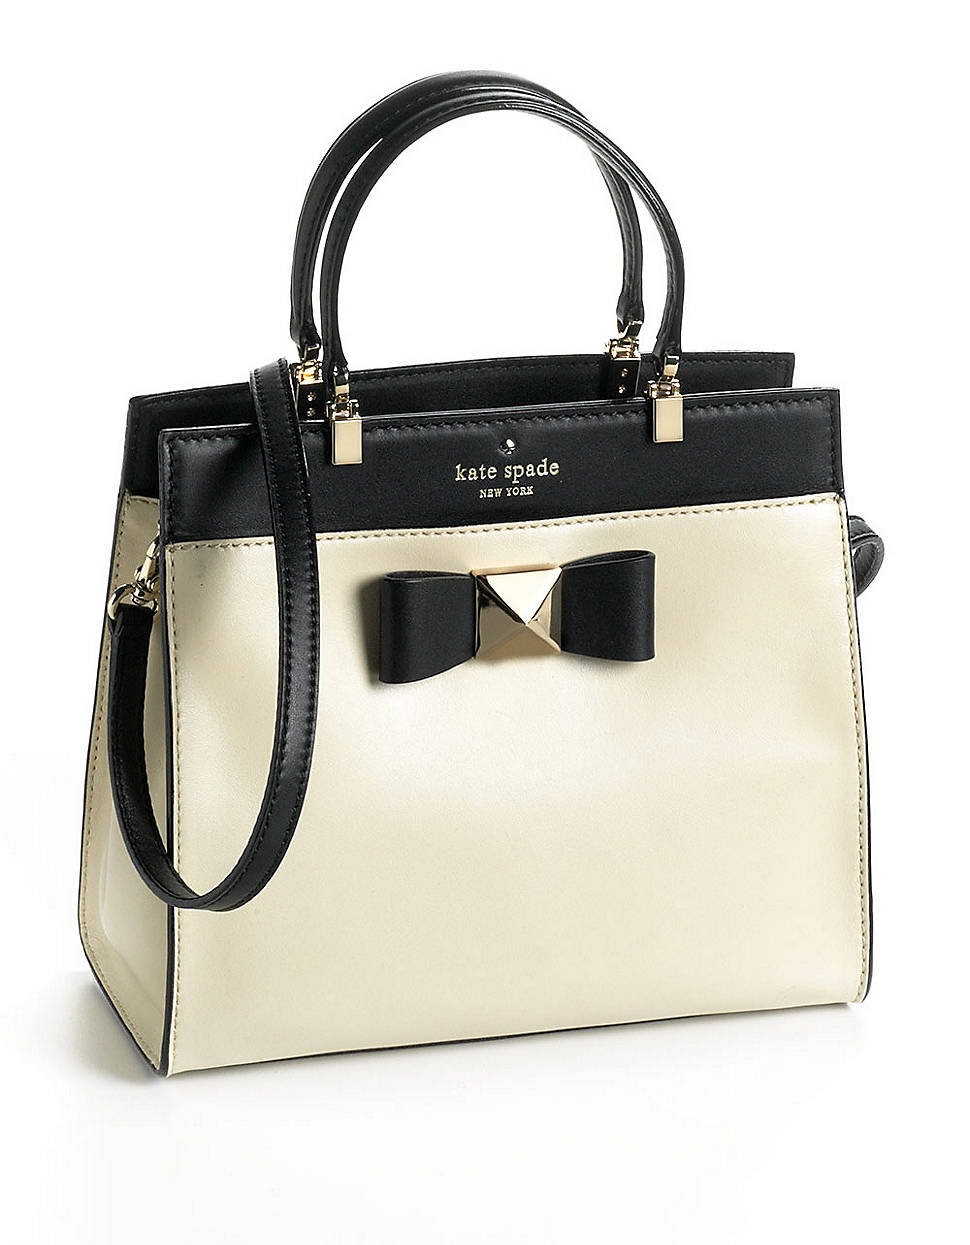 Image result for pictures of kate spade purses